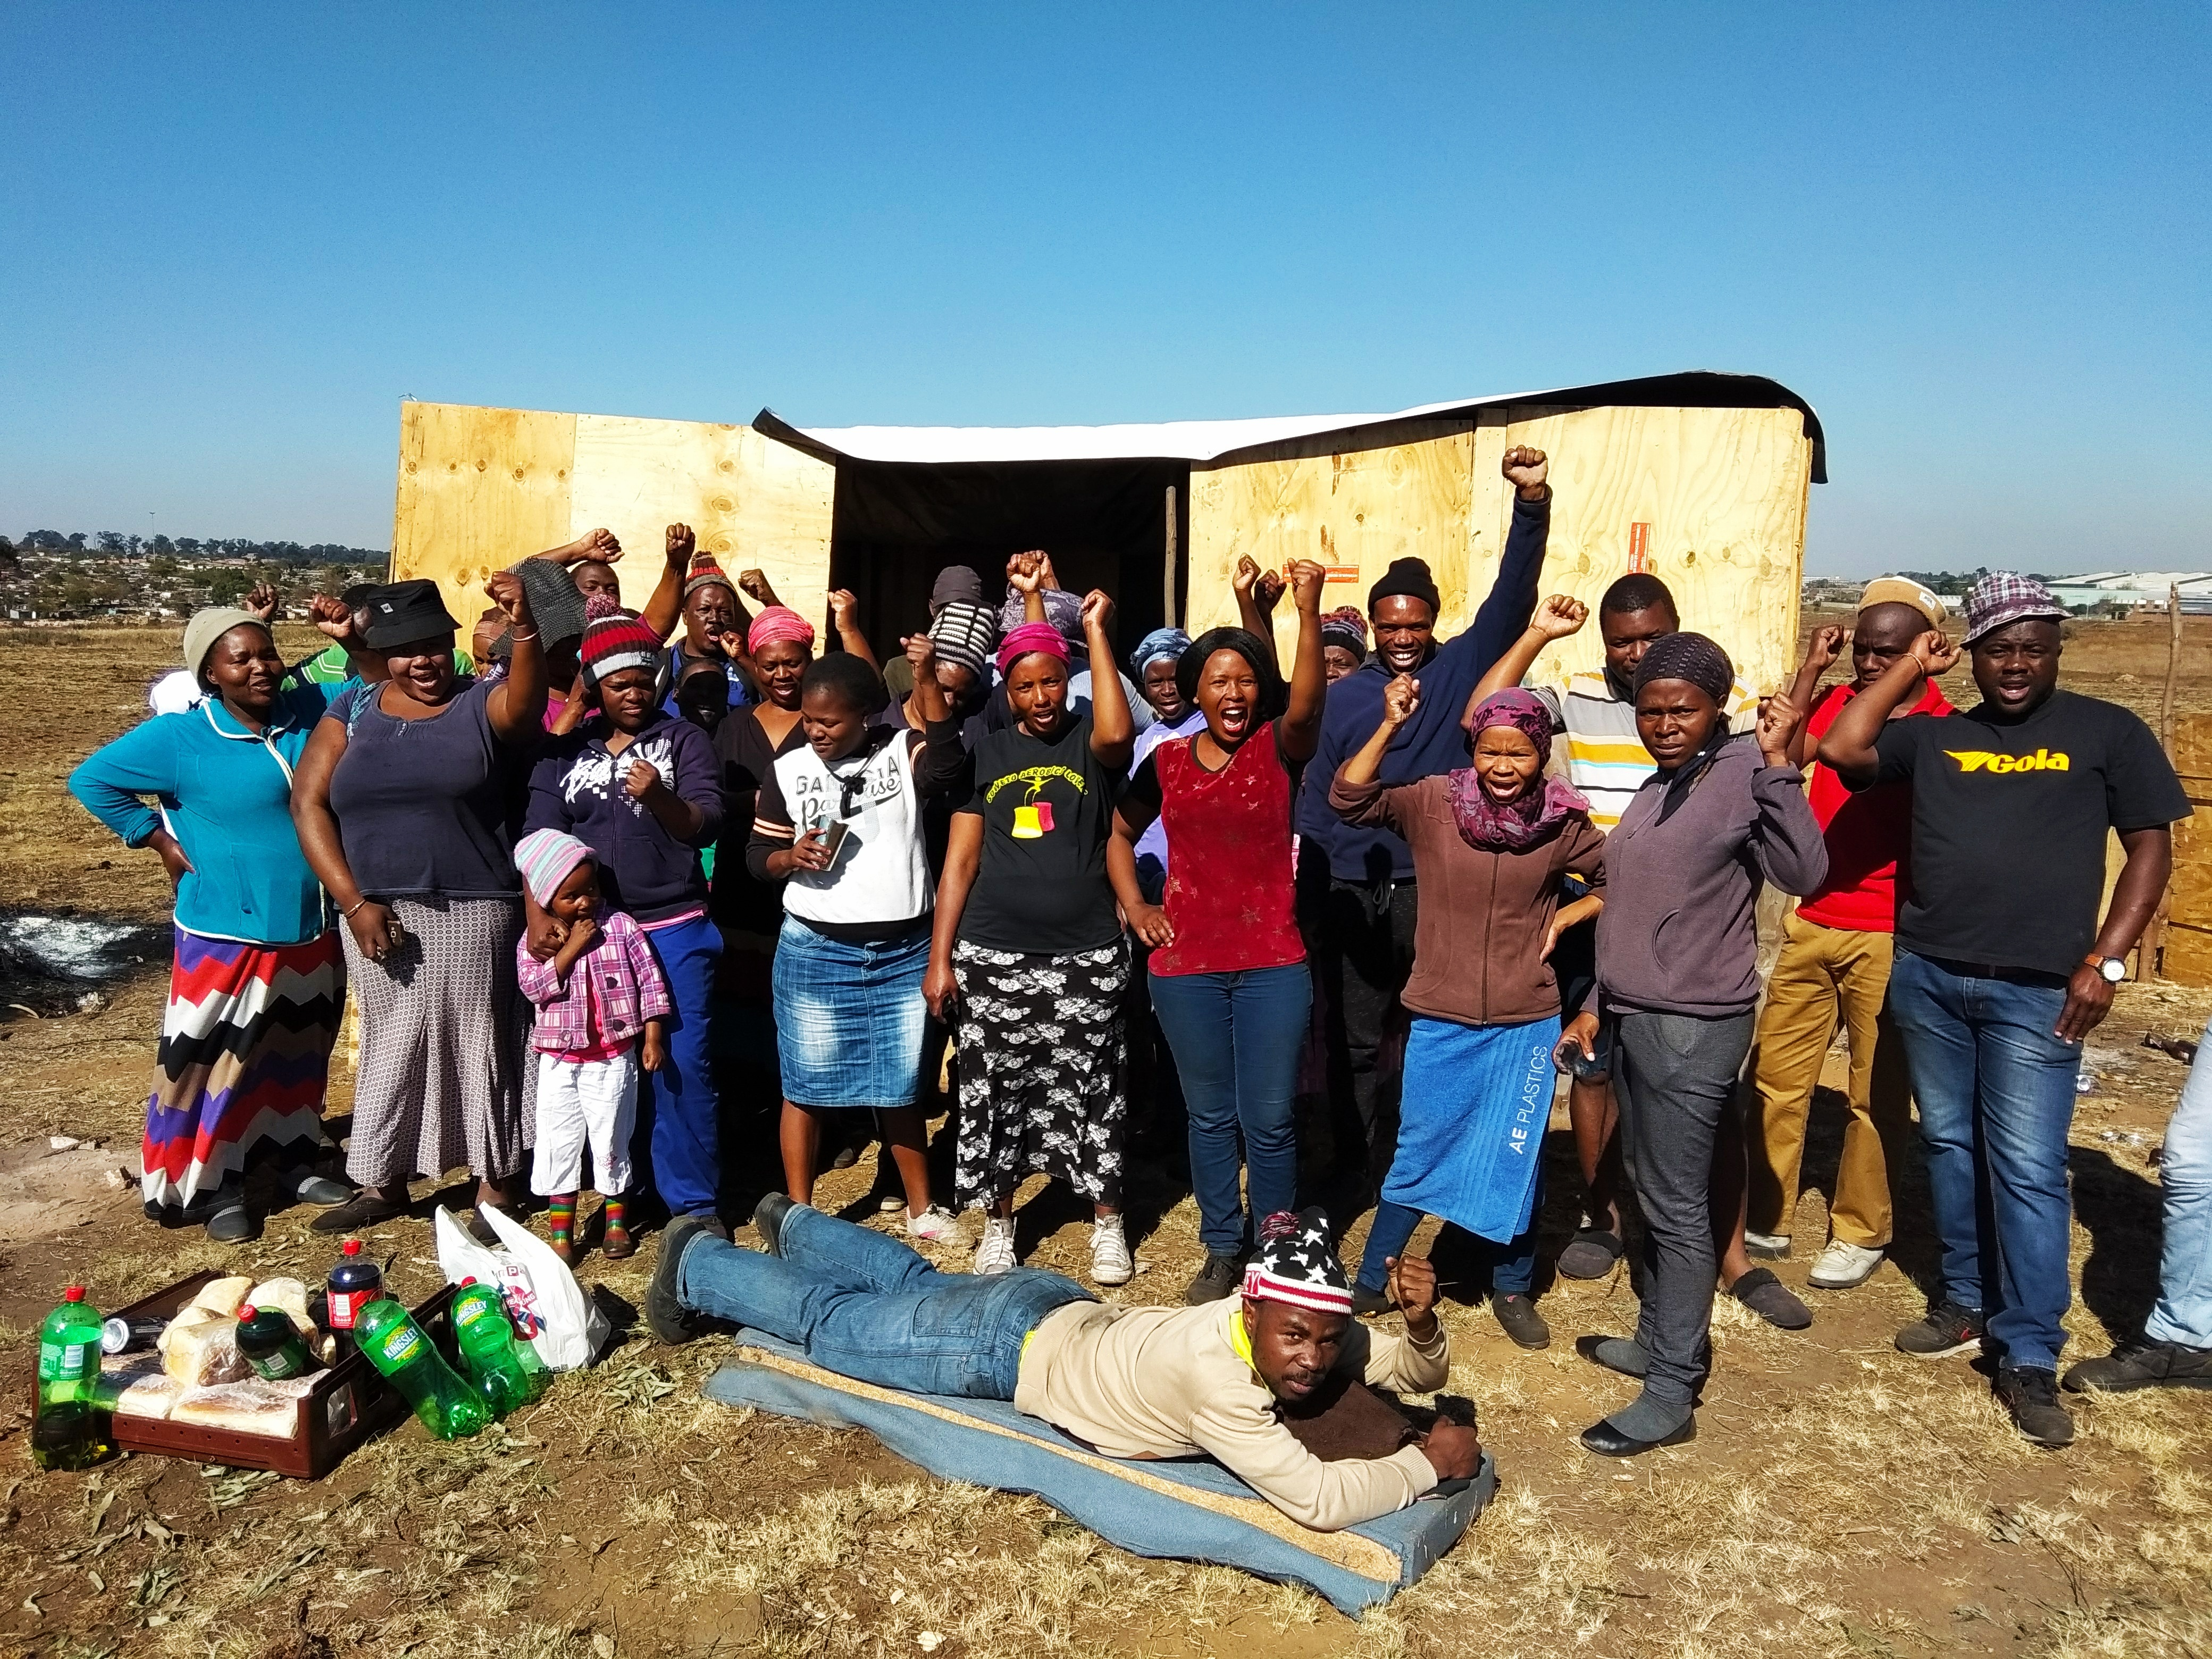 Interview with Thapelo Mohapi, General Secretary of Abahlali